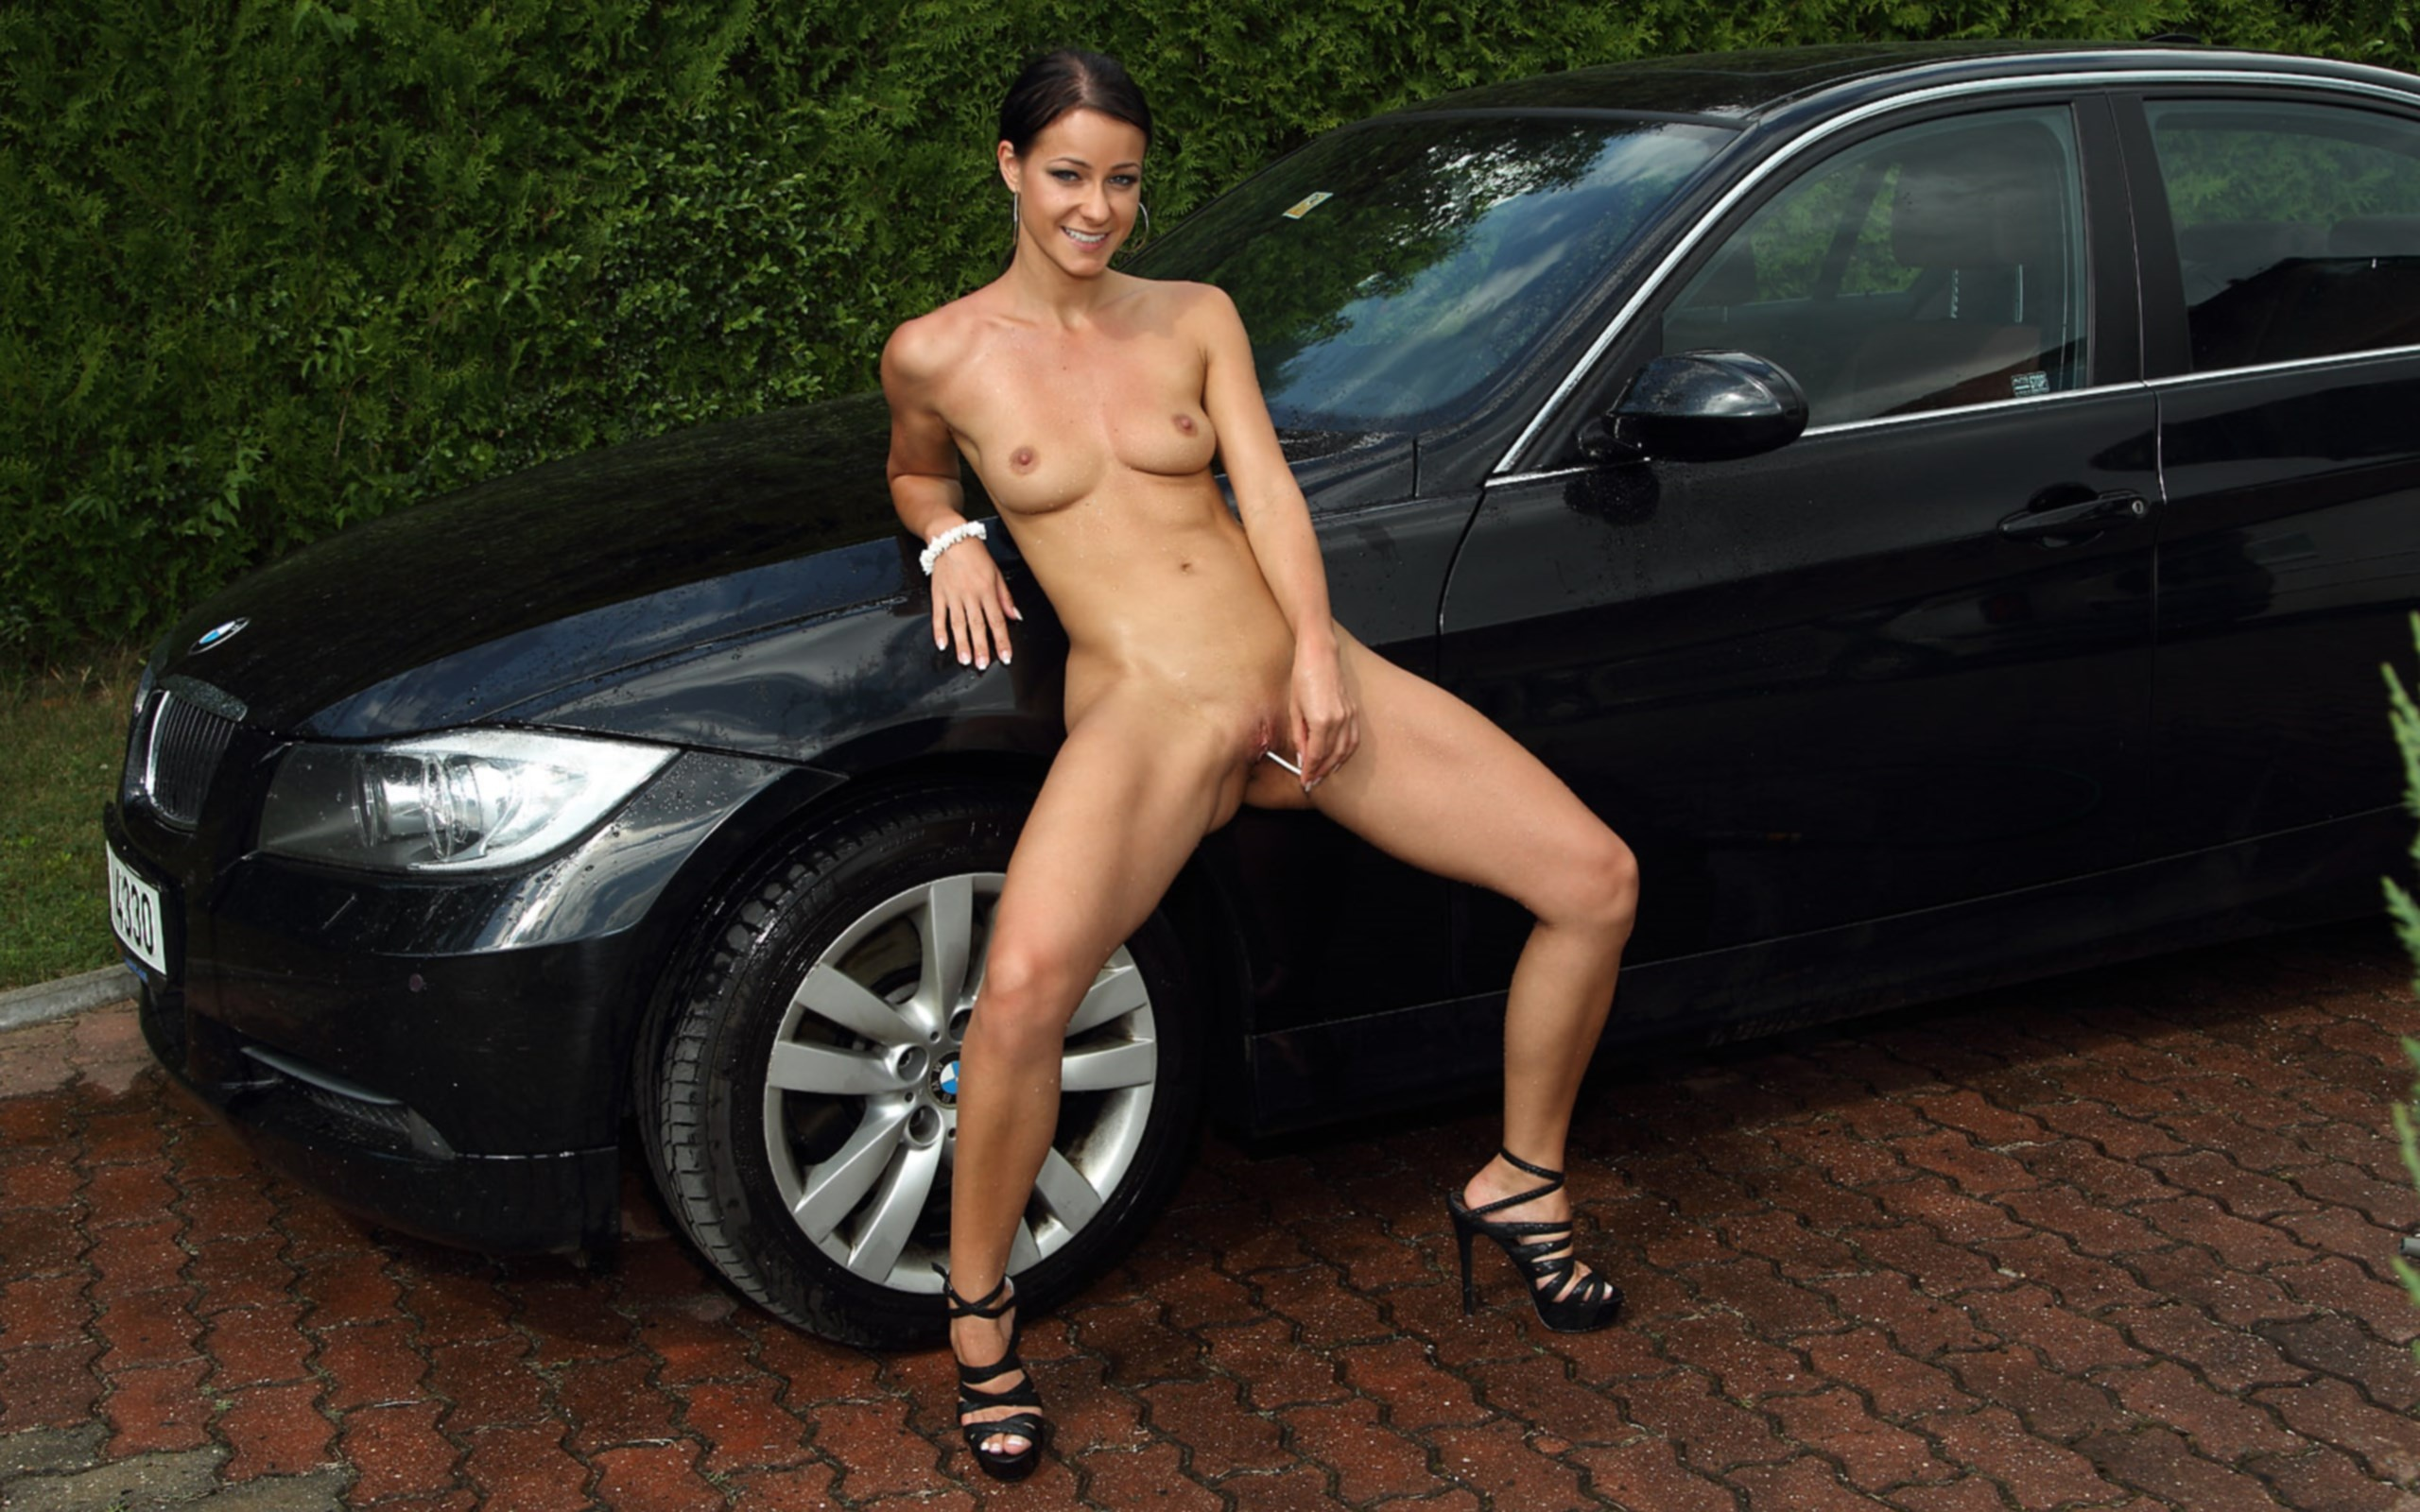 Naked Ladies And Cars